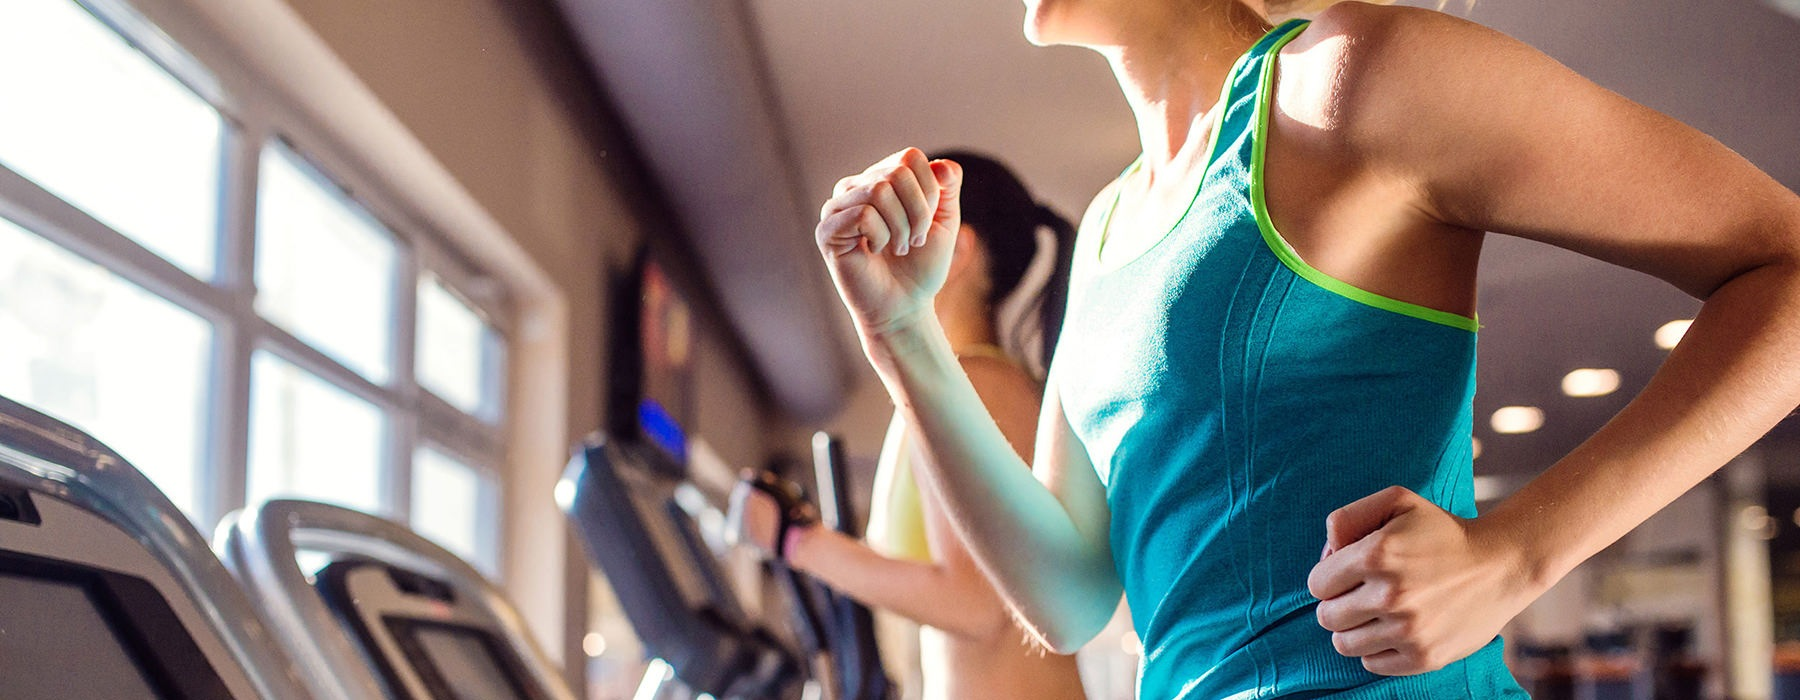 woman running on treadmill in fitness center